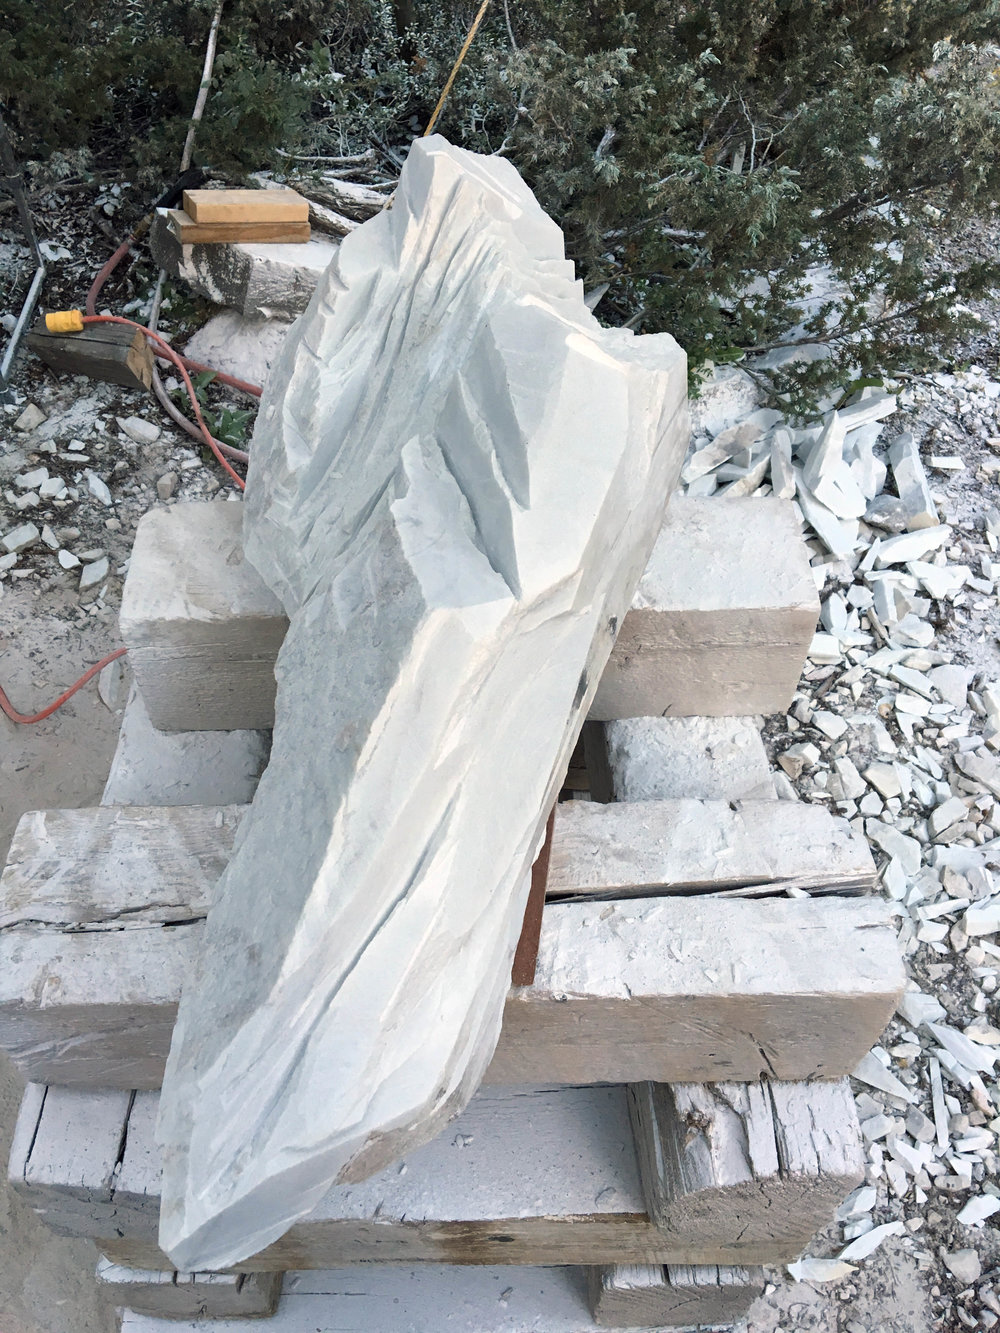 Initially stone is removed in large chunks by cutting through the marble with a diamond wheel on a grinder.